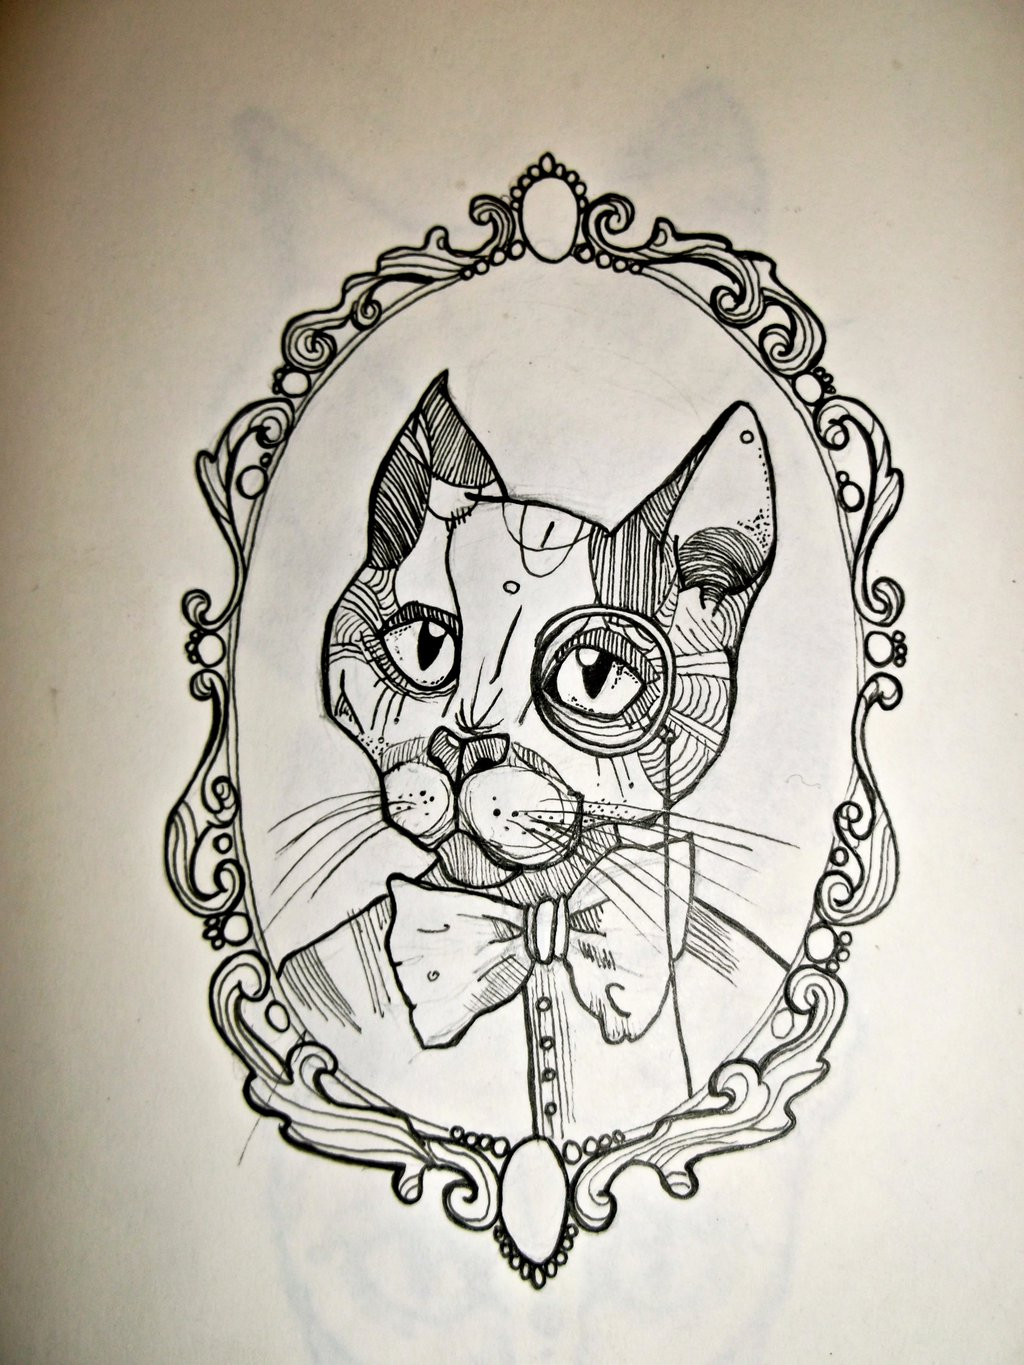 Cat with tie-bow in monocle in curled frame tattoo design by Ronkedoor